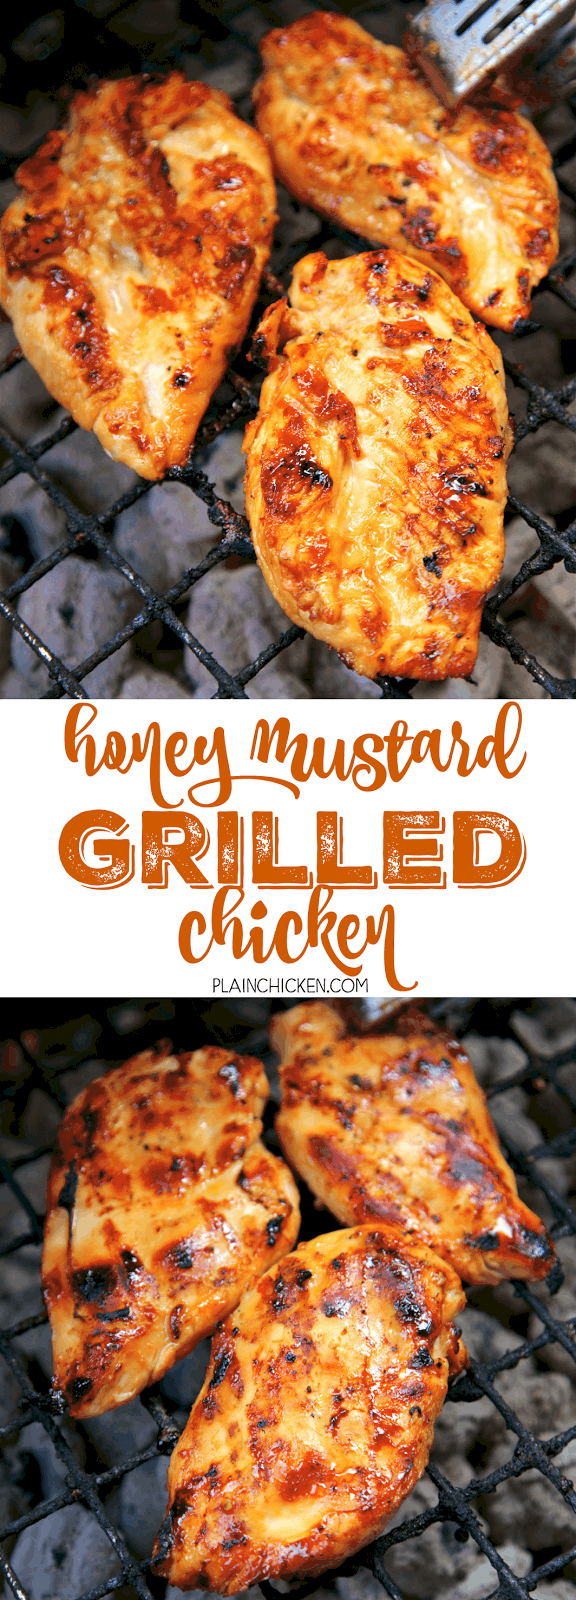 Honey Mustard Grilled Chicken - only 5 ingredients in the marinade! Honey, dijon mustard, lemon juice, soy sauce and garlic. SO simple and delicious! Everyone cleaned their plate! Can also use the marinade on pork